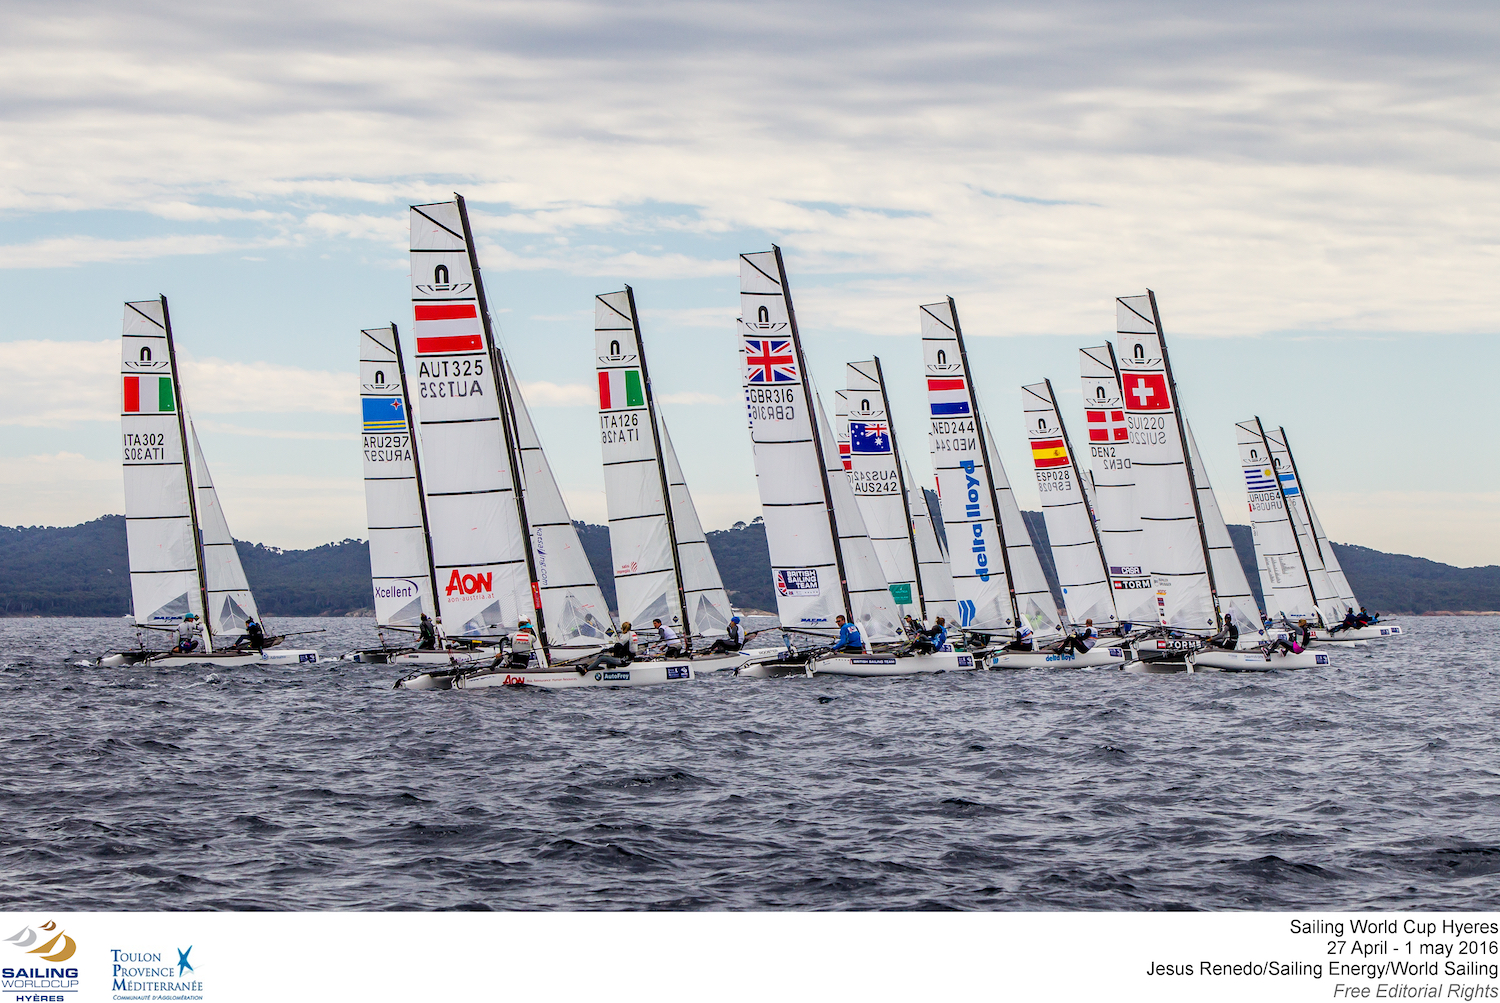 ©Jesus Renedo/Sailing Energy/World Sailing/ Nacra 17 Hyeres